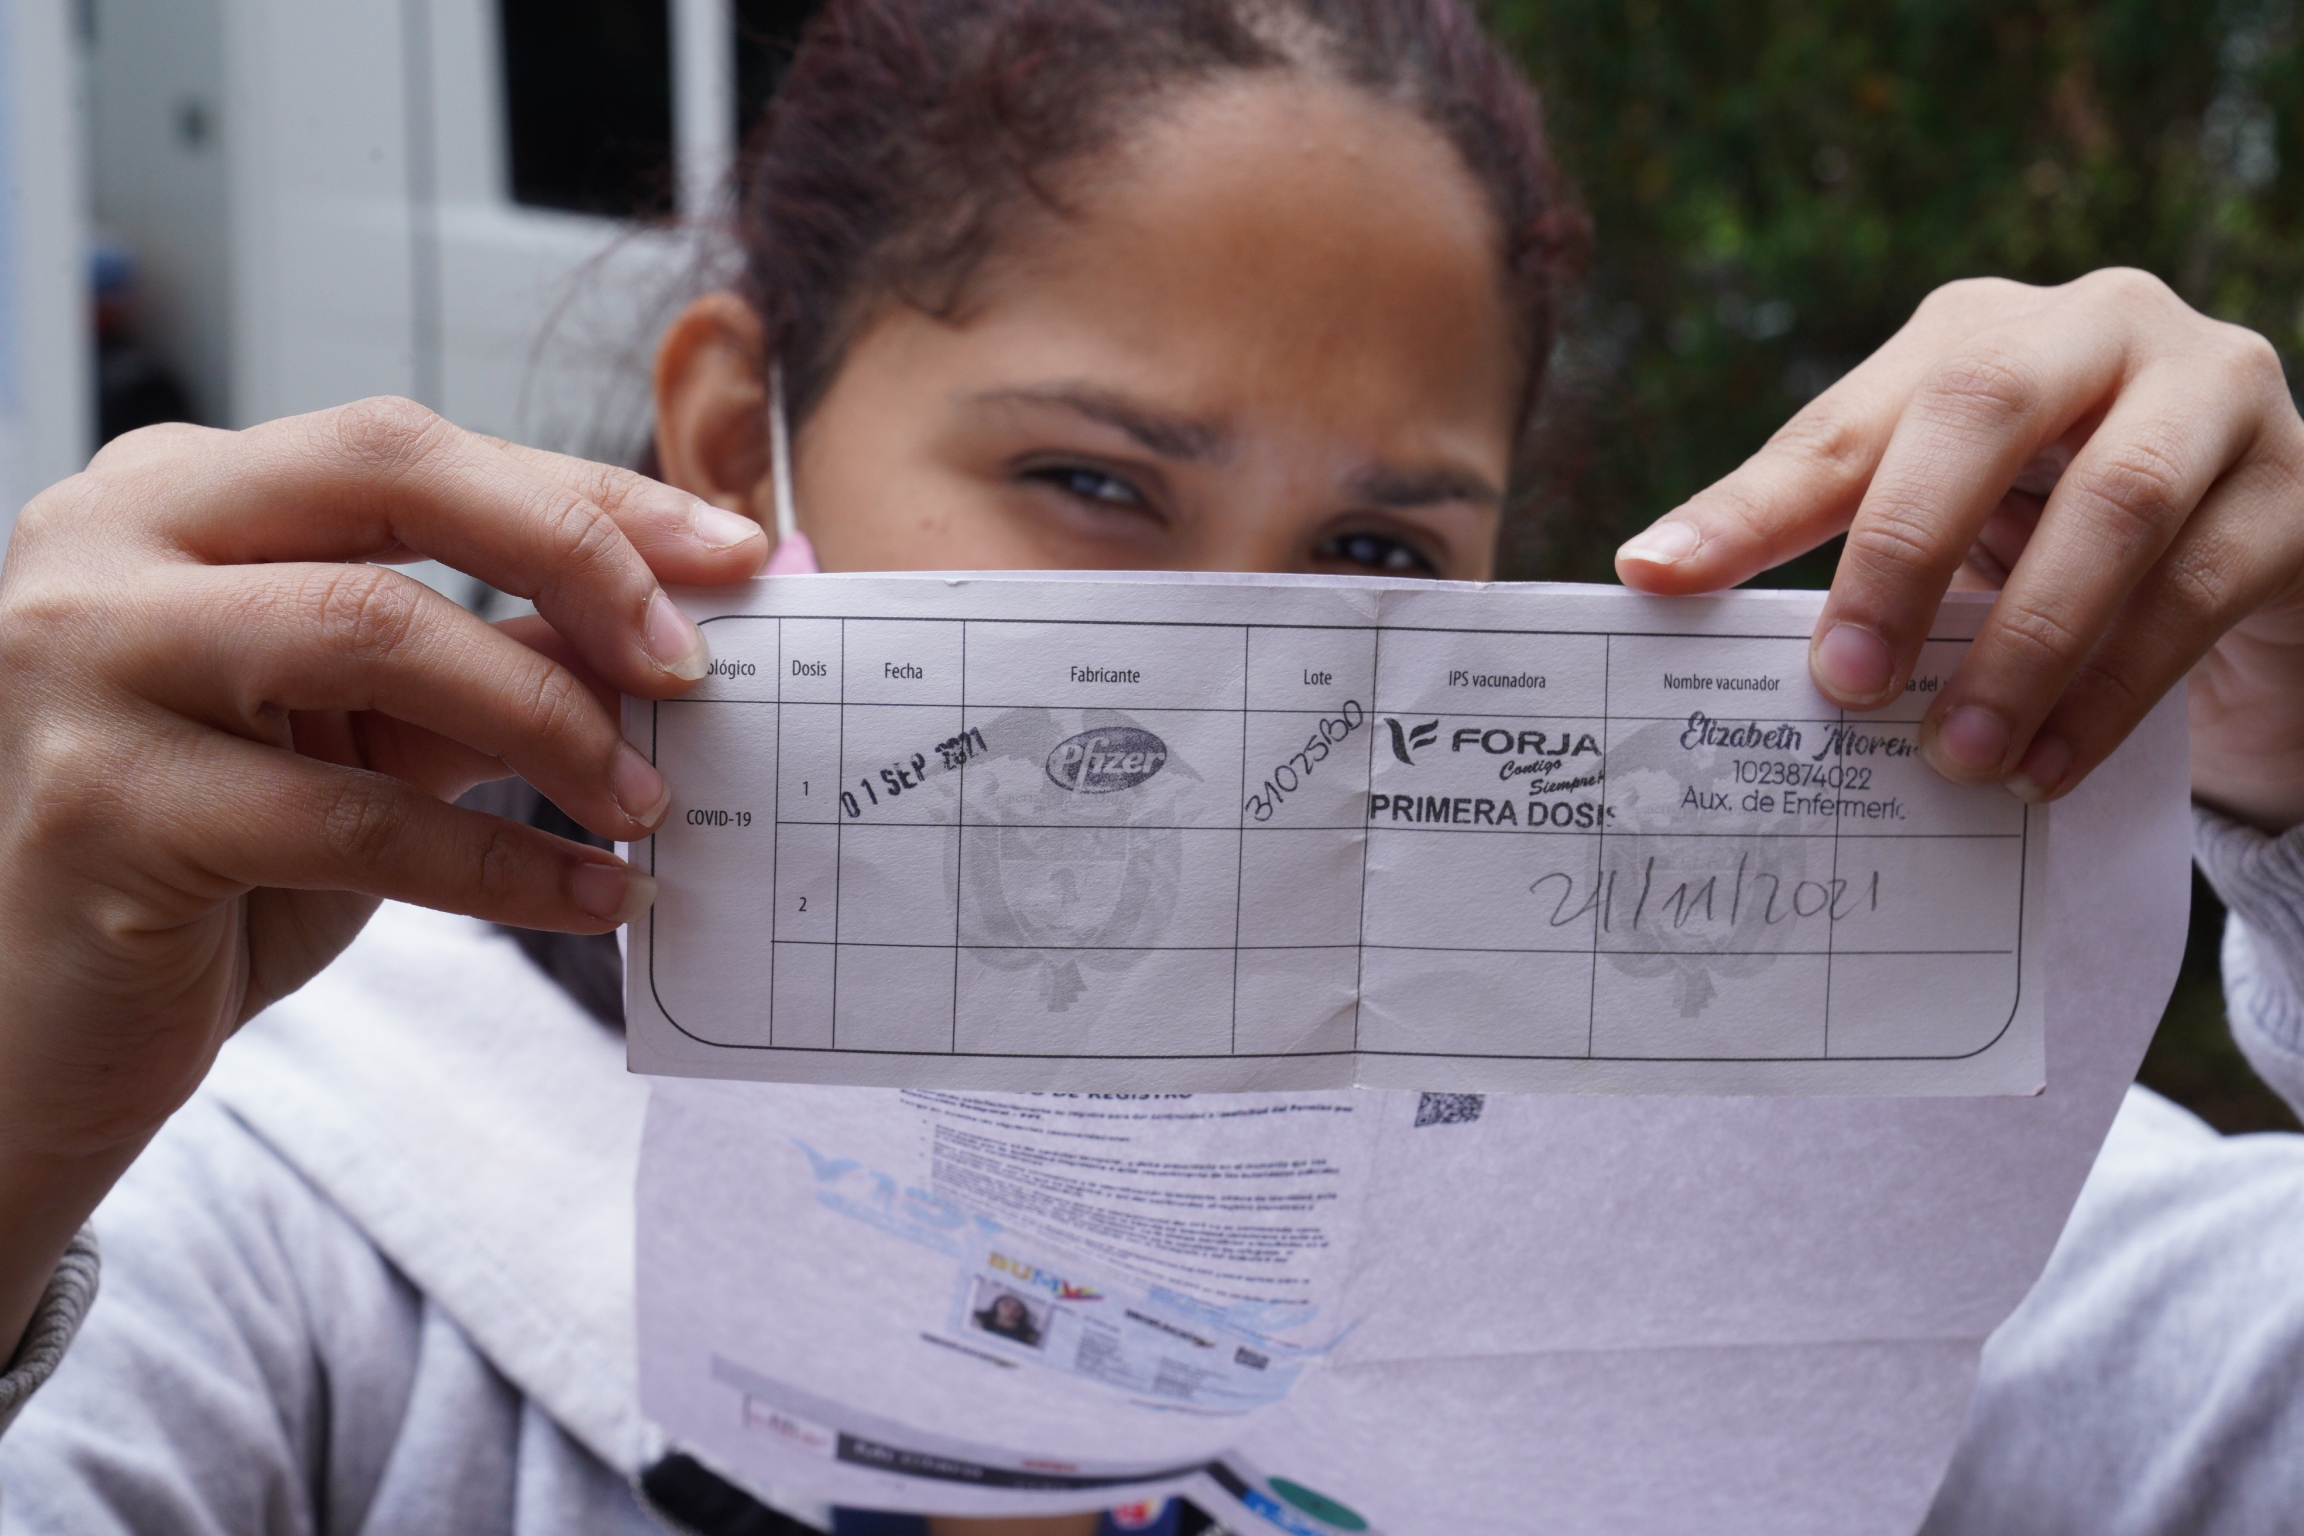 Oriana Fernandez Fernandez got her first dose of the Pfizer Vaccine in Bogota during the first week of September. But only after completing her TPS application and showing a sheet with a QR code that proved it.